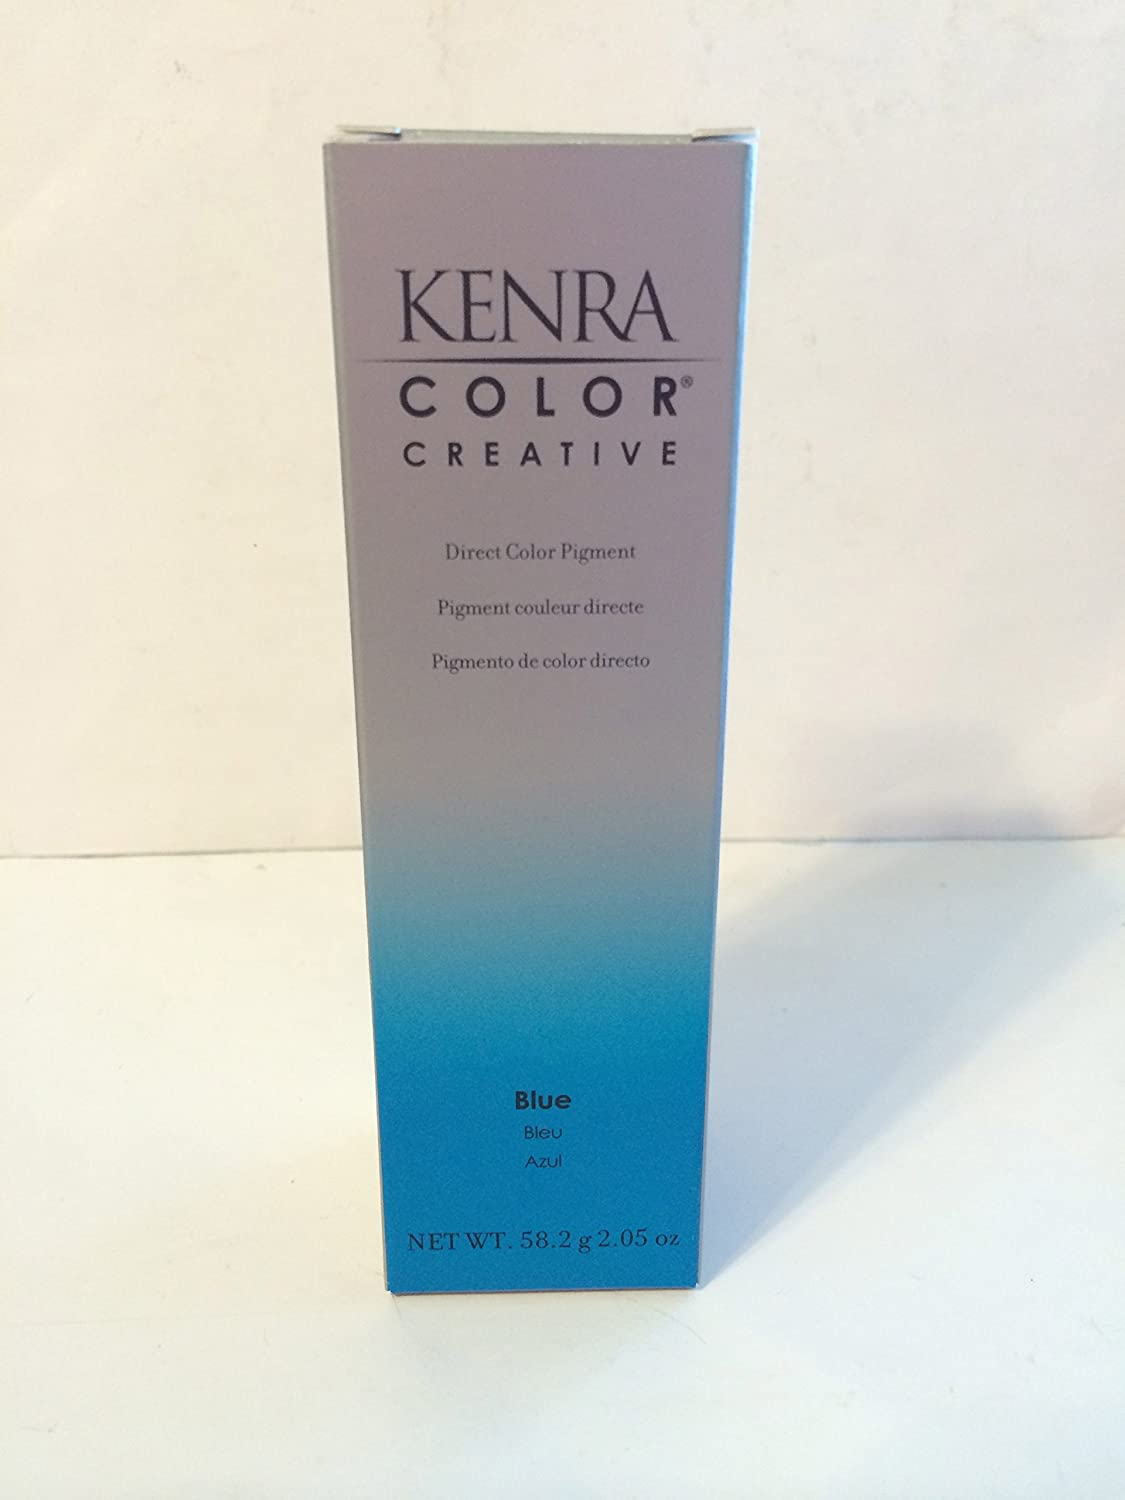 Kenra Color Creative Direct Color Pigment - BLUE 2.05